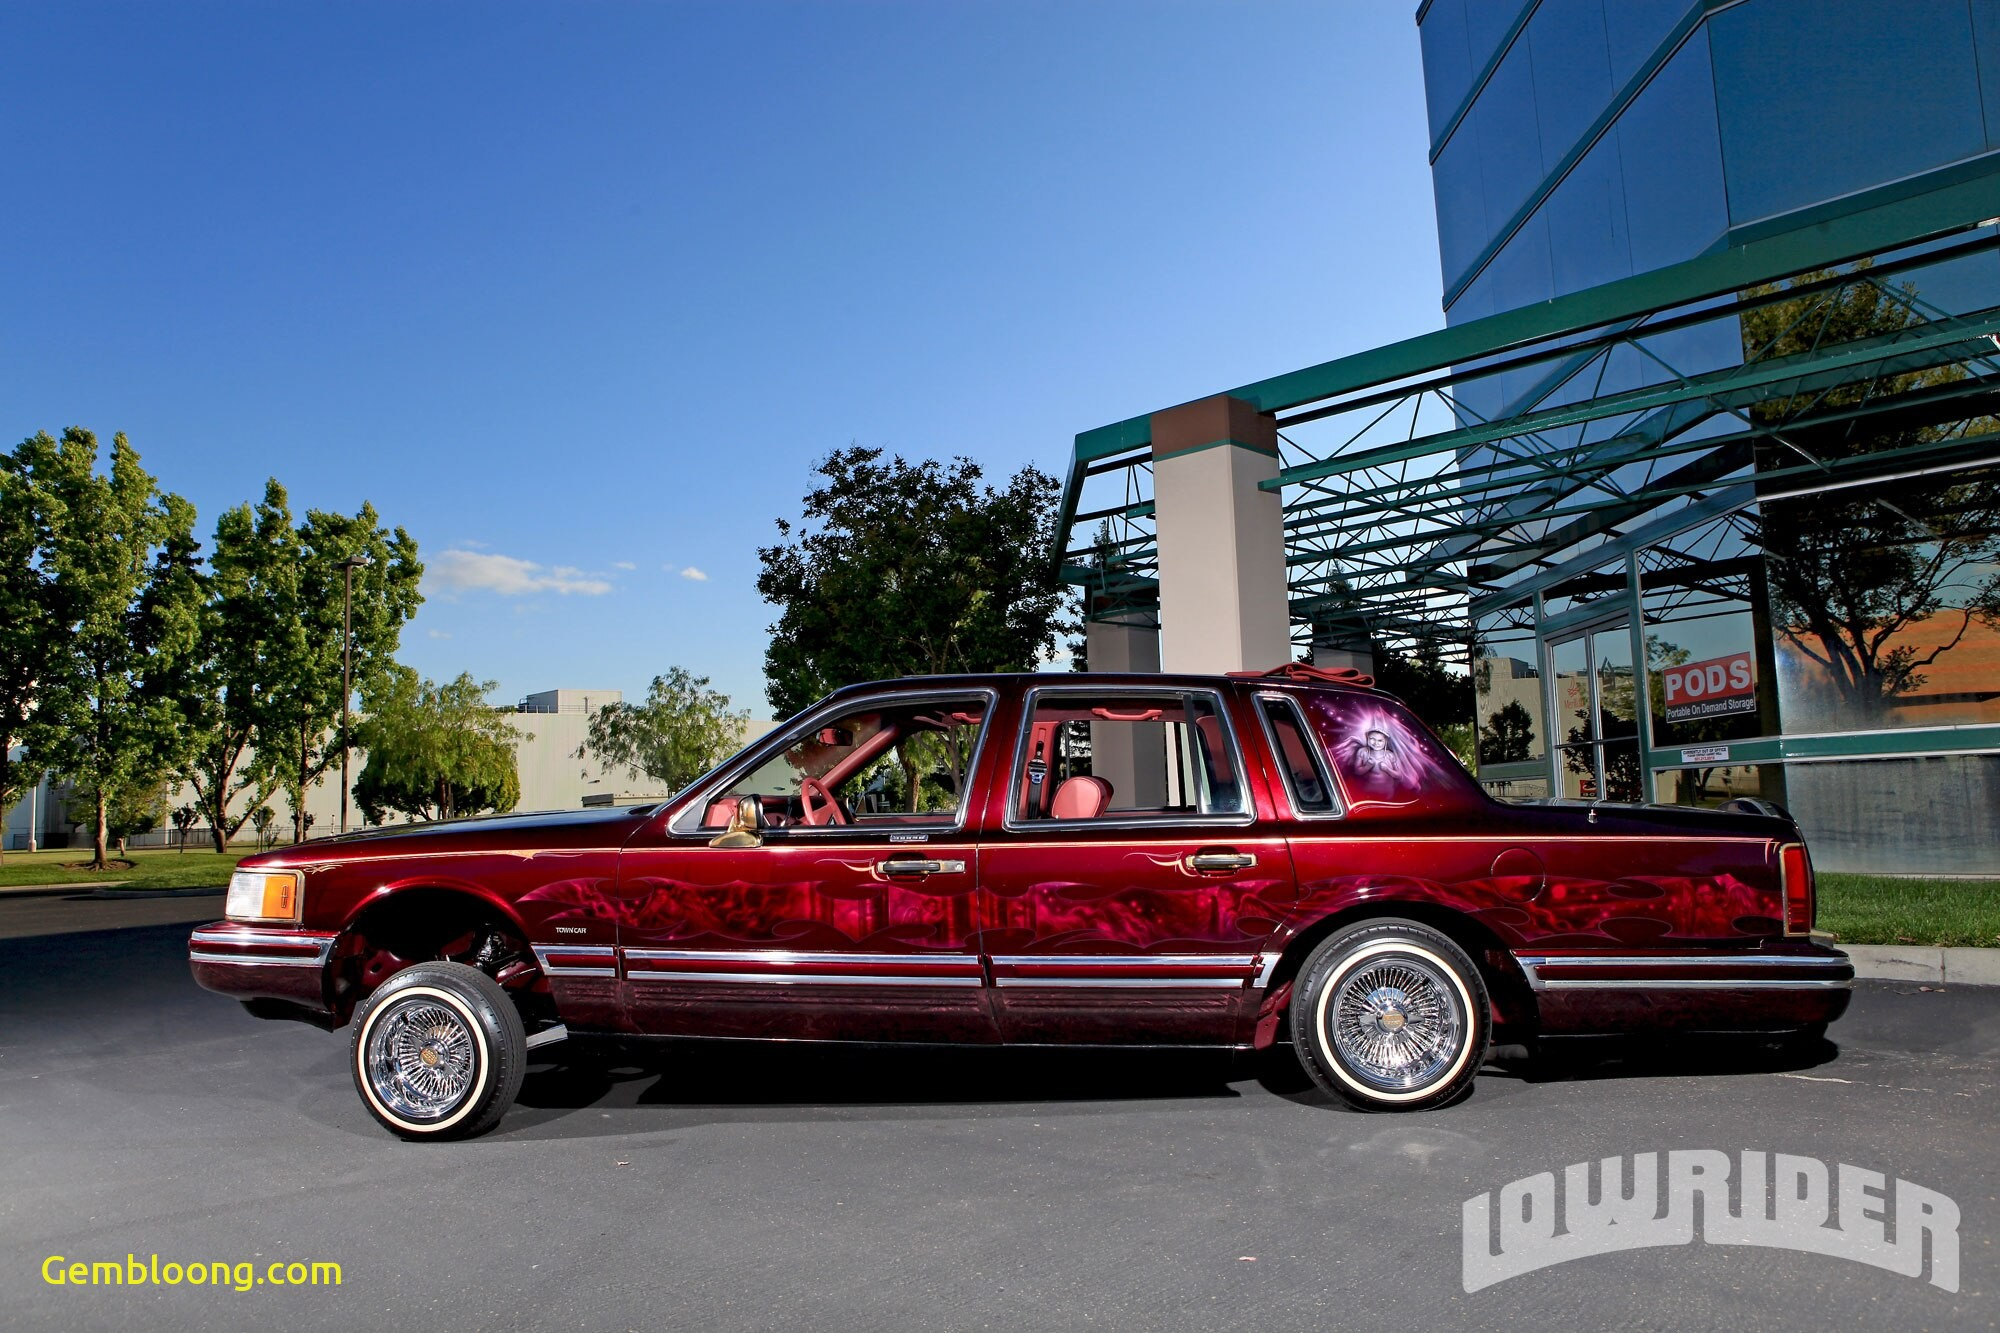 Used Lincoln town Cars for Sale Near Me Elegant On A 1994 Lincoln town Car